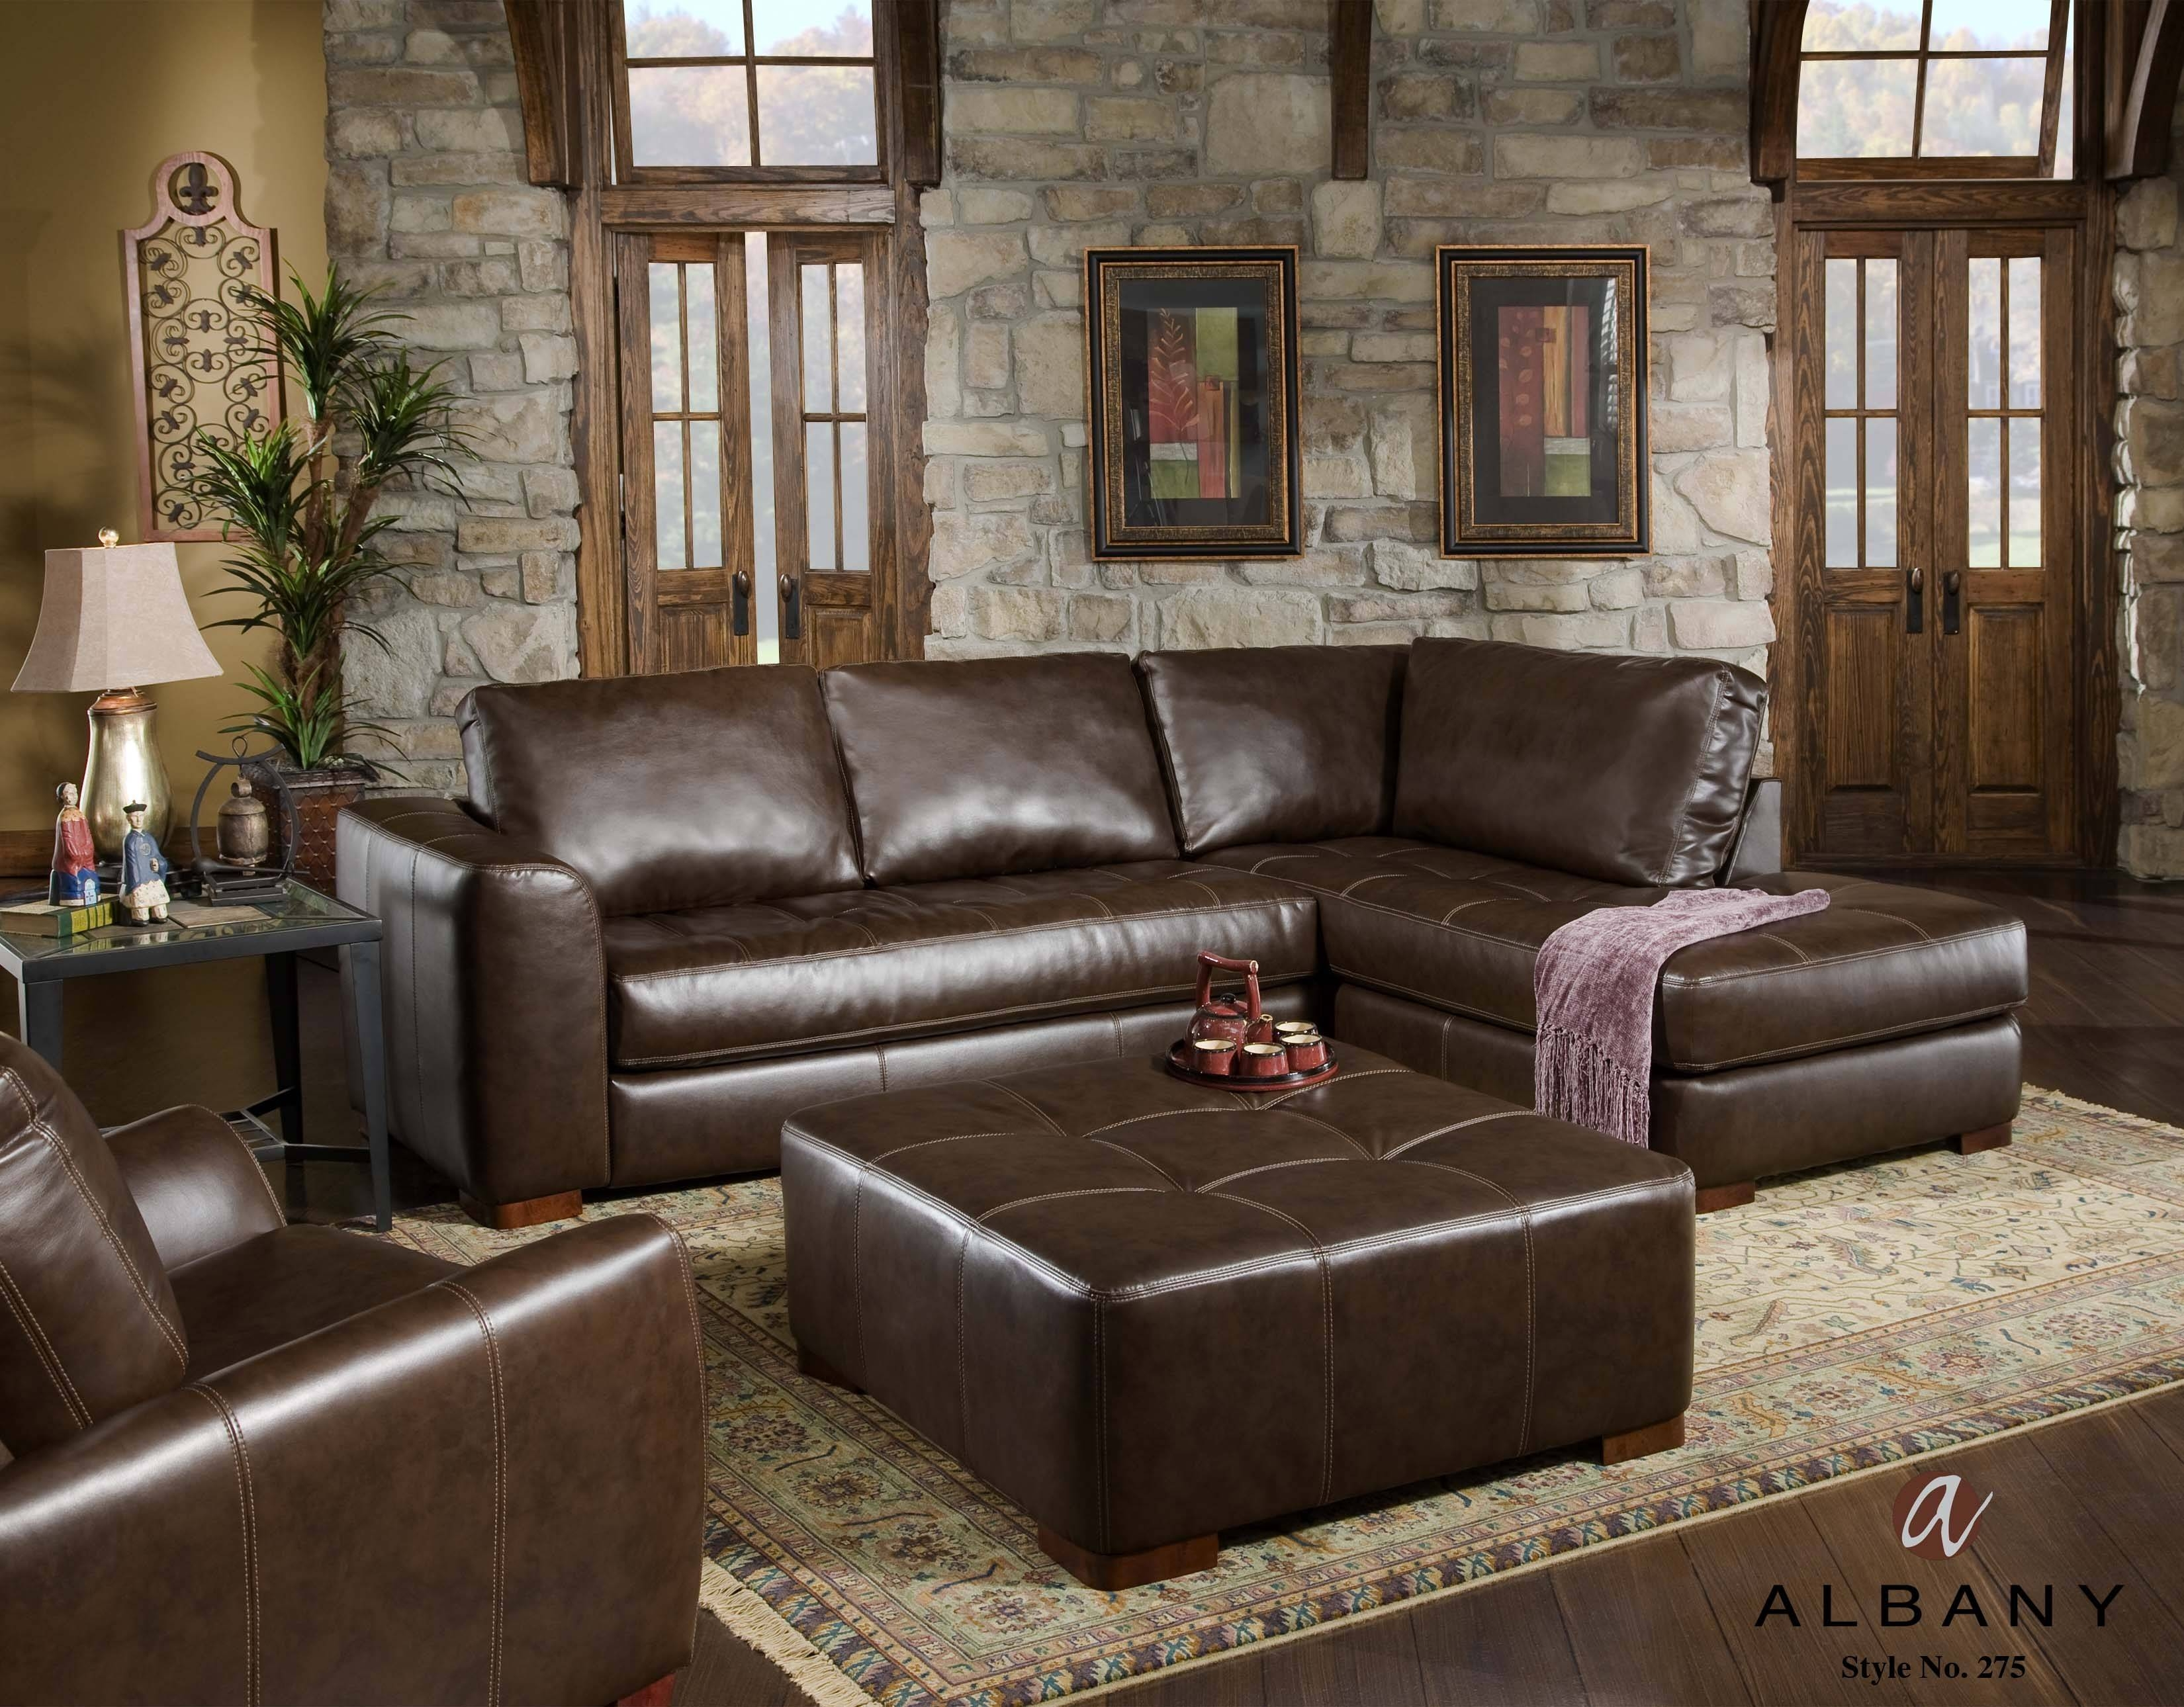 Albany Sofa - Leather Sectional Sofa for Corinthian Sectional Sofas (Image 1 of 30)